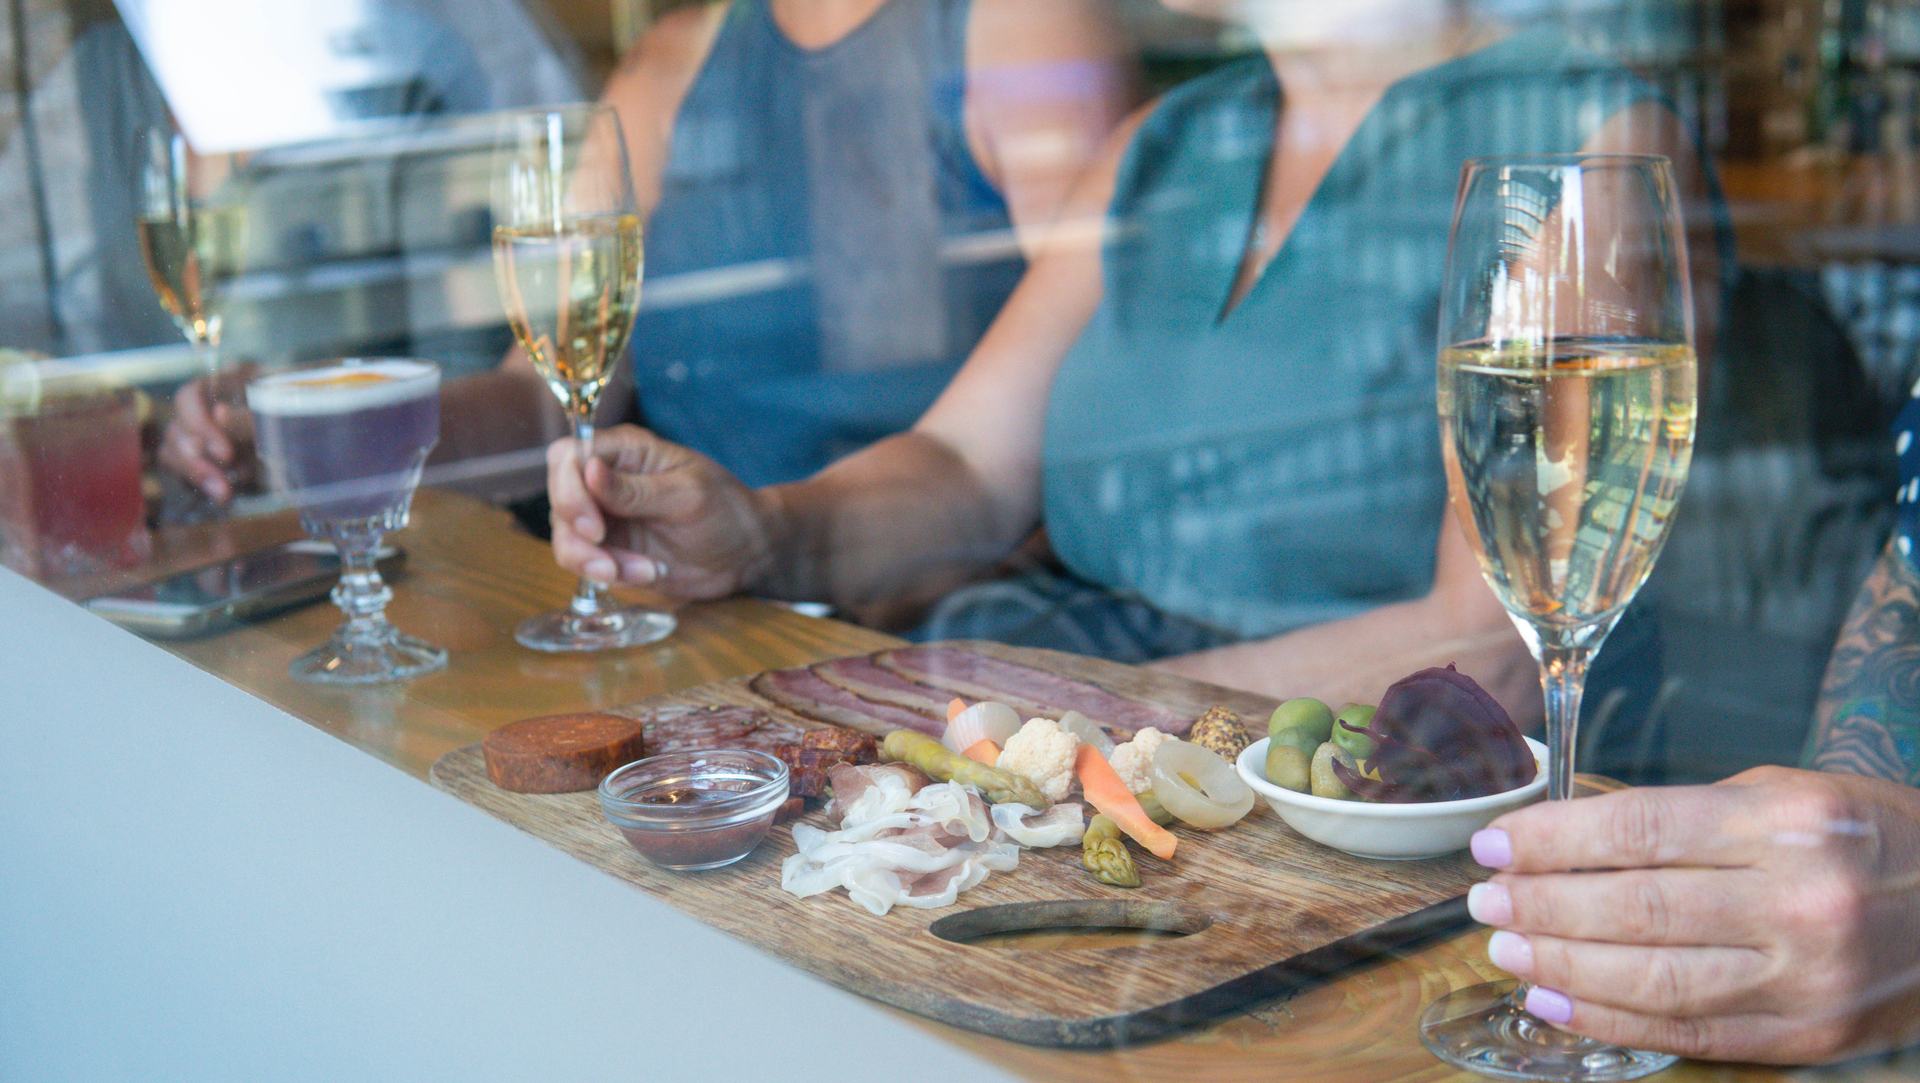 FOOD, WINE, AND GOOD TIMES ARE MEANT TO BE SHARED